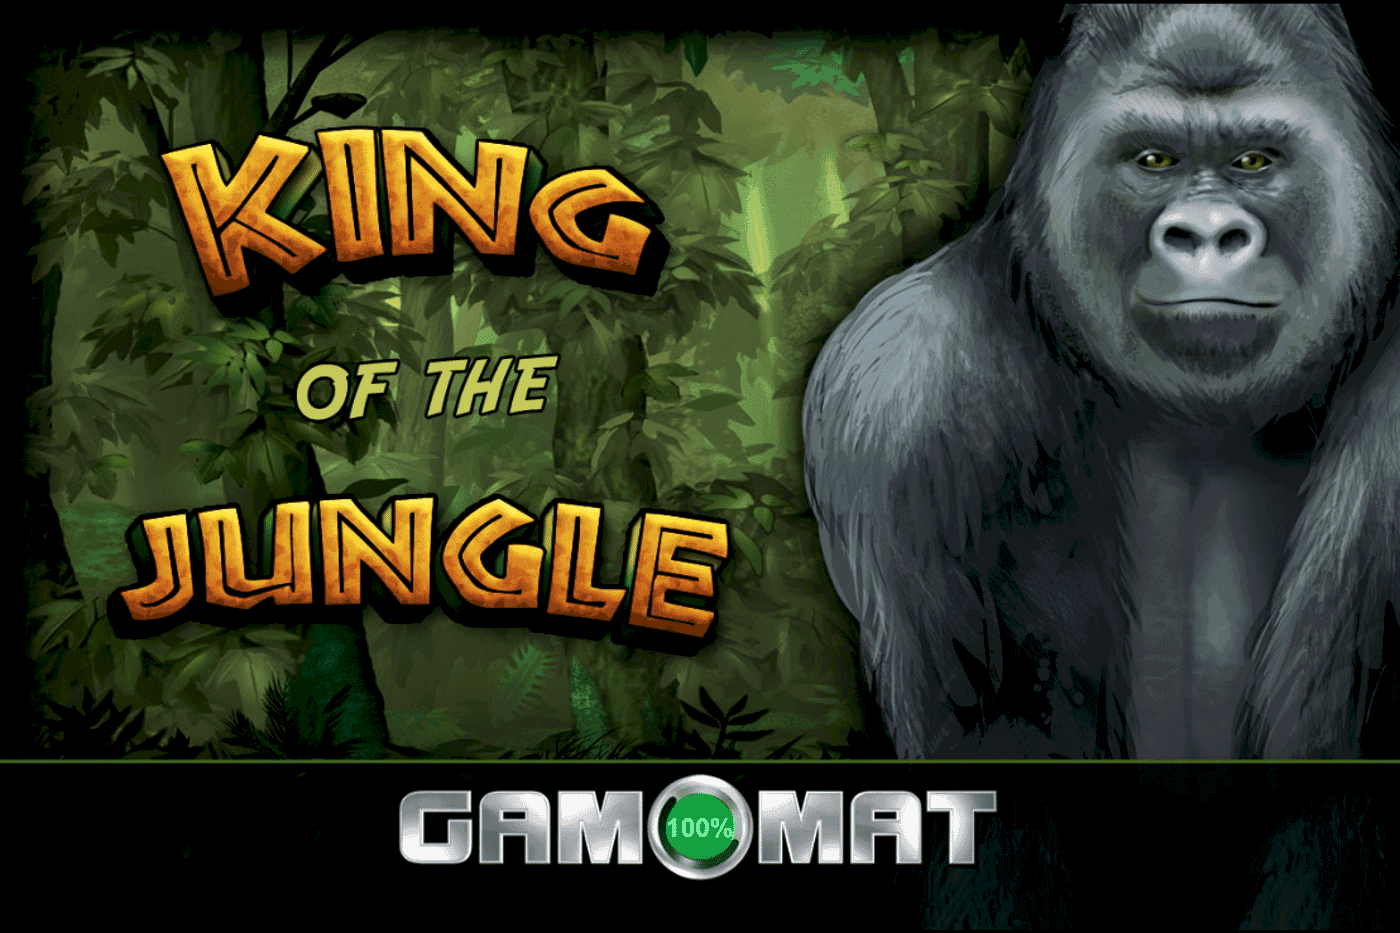 King of the Jungle Gamomat Logo